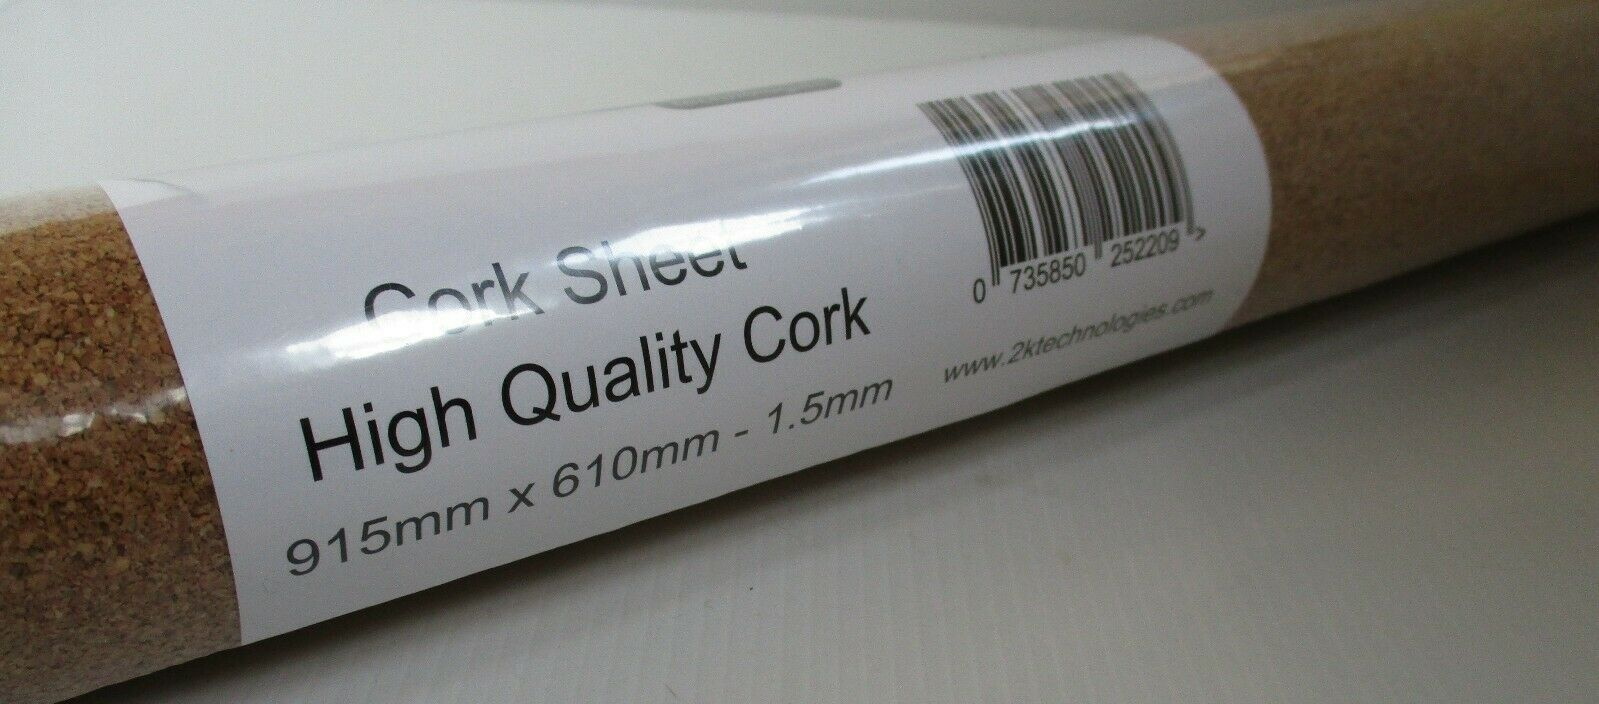 2KCork - Bulk Lot 8 x Rolls 1.5mm x 915mm x 610mm Fine High Quality Cork Sheet